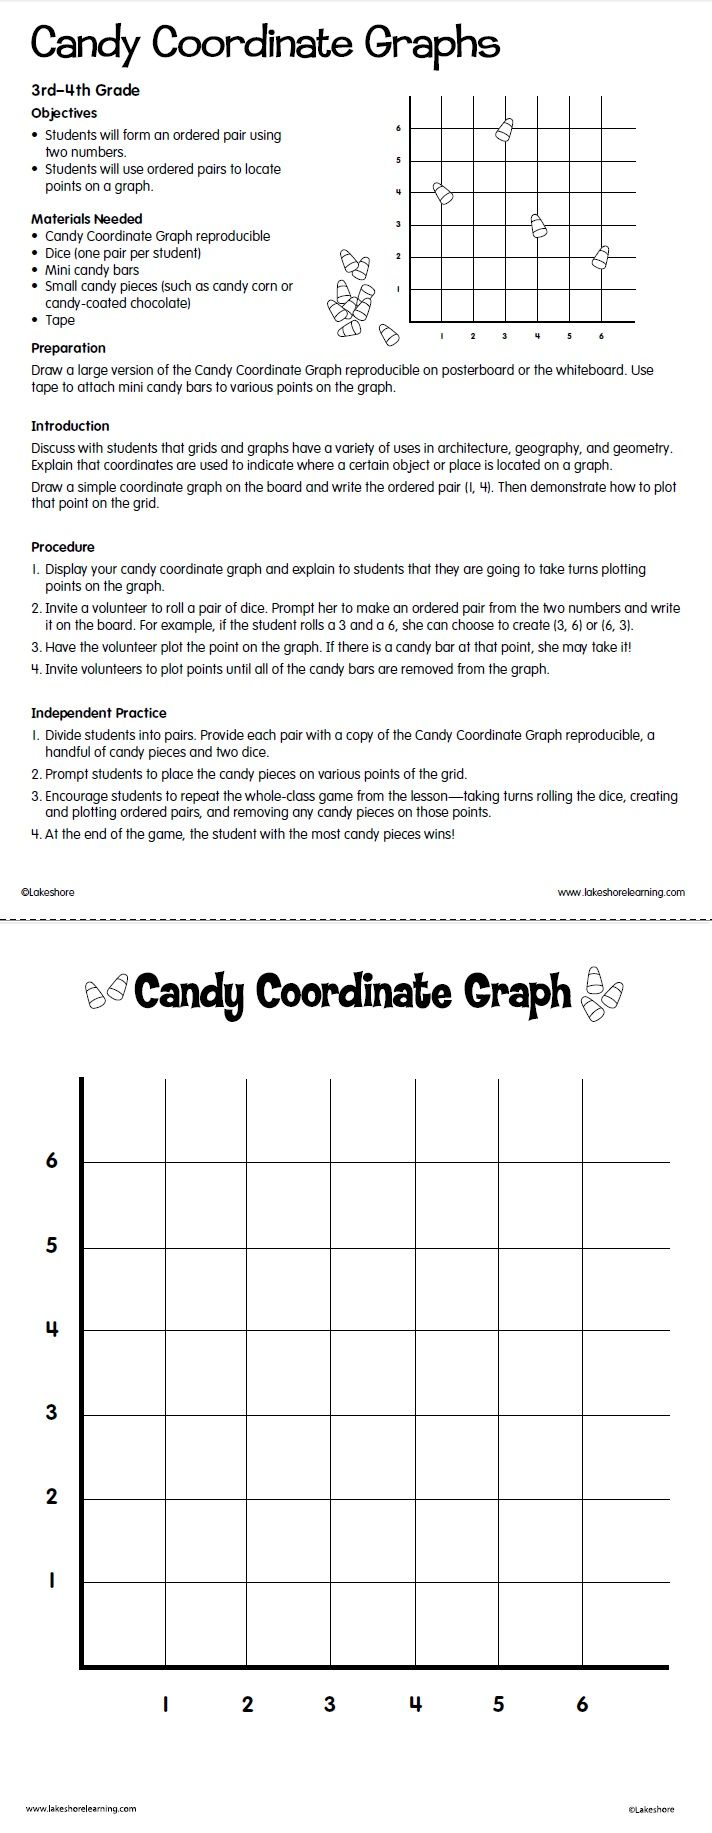 Candy Coordinate Graphs Lesson Plan From Lakeshore Learning